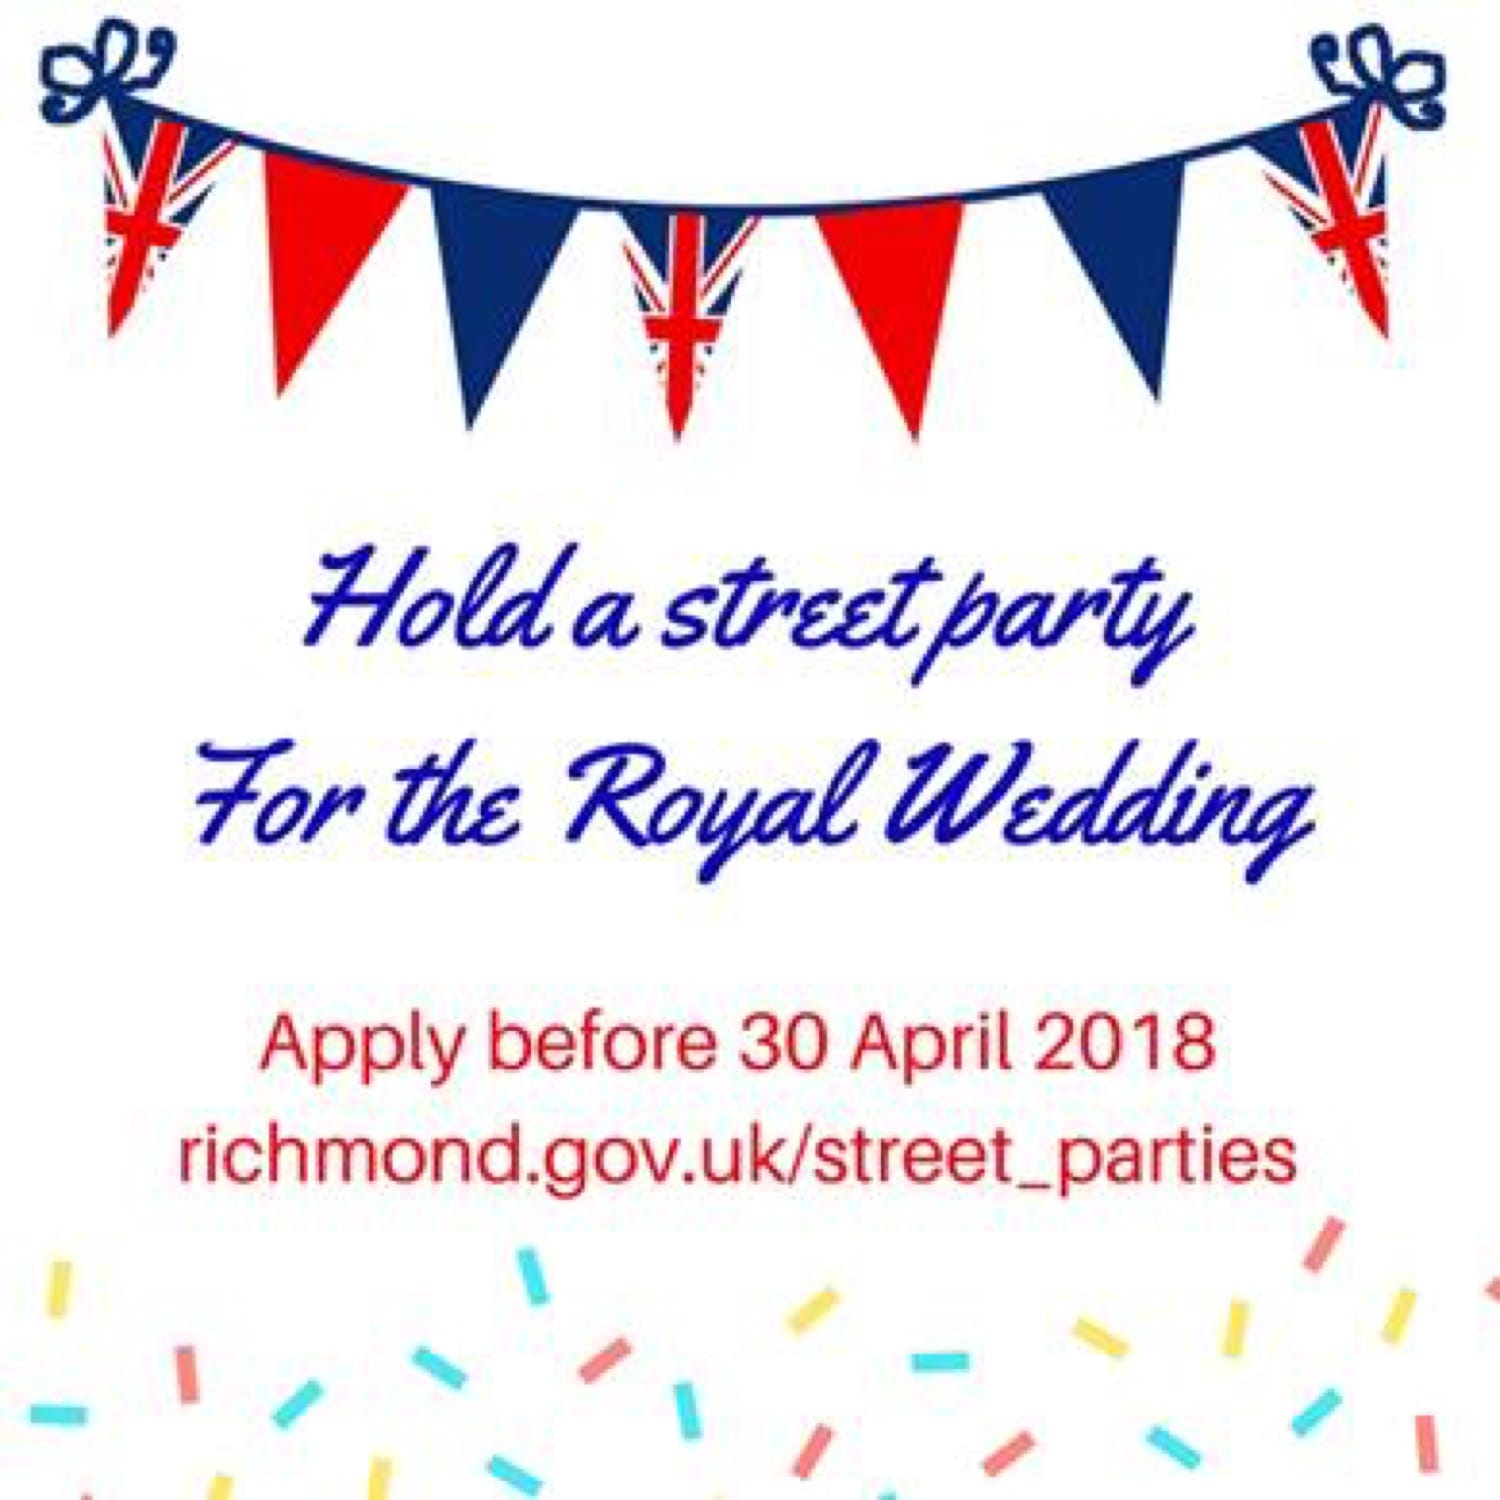 Richmond Council Offers Free Street Parties For Royal Wedding